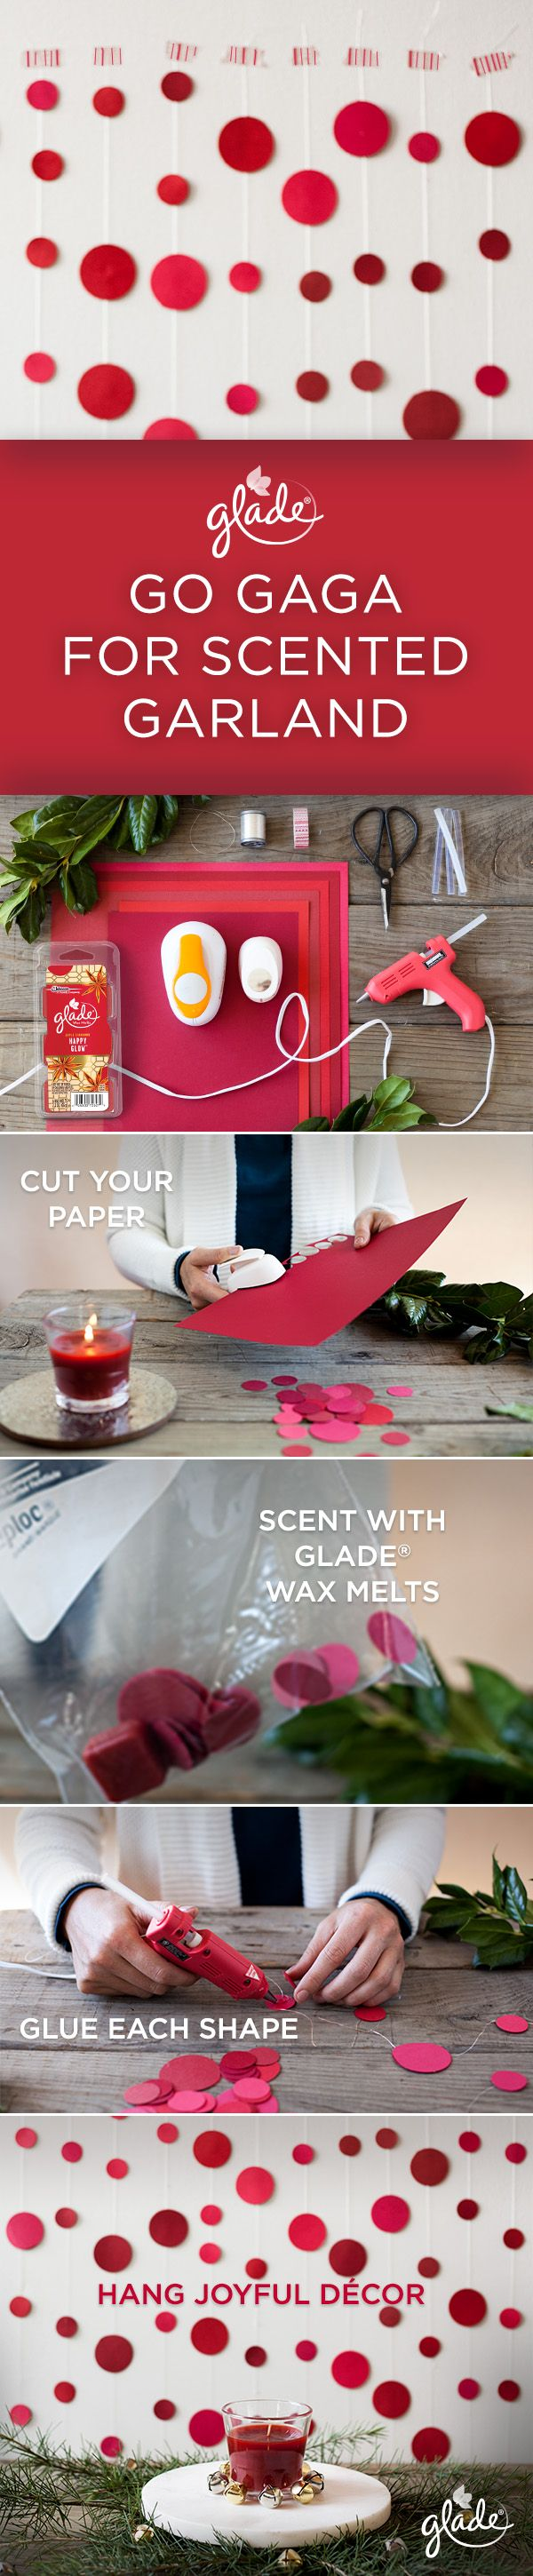 Add an extra scented touch sure to get you major oohs and ahhs this holiday season with DIY scented garland décor. Start by cutting differently sized circles out of craft paper. Then put them in a Ziploc® bag with our Happy Glow Wax Melts until they're scented to your liking. Next, take the circles out of the bag and hot glue each circle to fishing line. Finally, hang the finished strand on the nearest wall or across the top of a bookshelf. Feel Joy. Feel Glade.